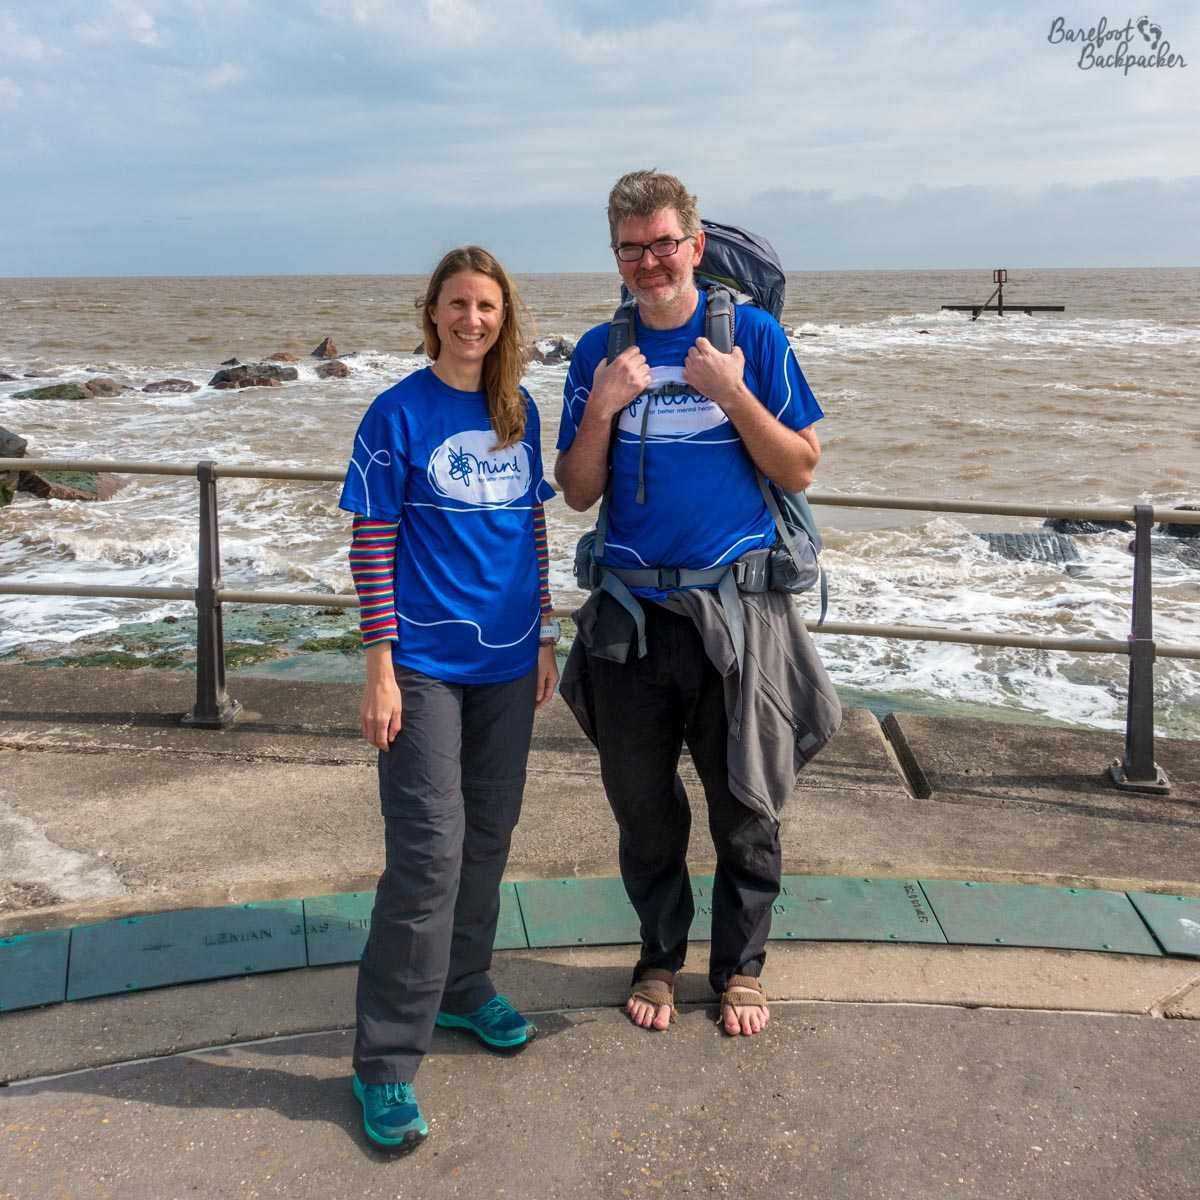 The Barefoot Backpacker not travelling solo for twice. Rather he is with Becky (from Becky the Traveller), standing on the promenade at Ness Point, the furthest easterly point in the UK